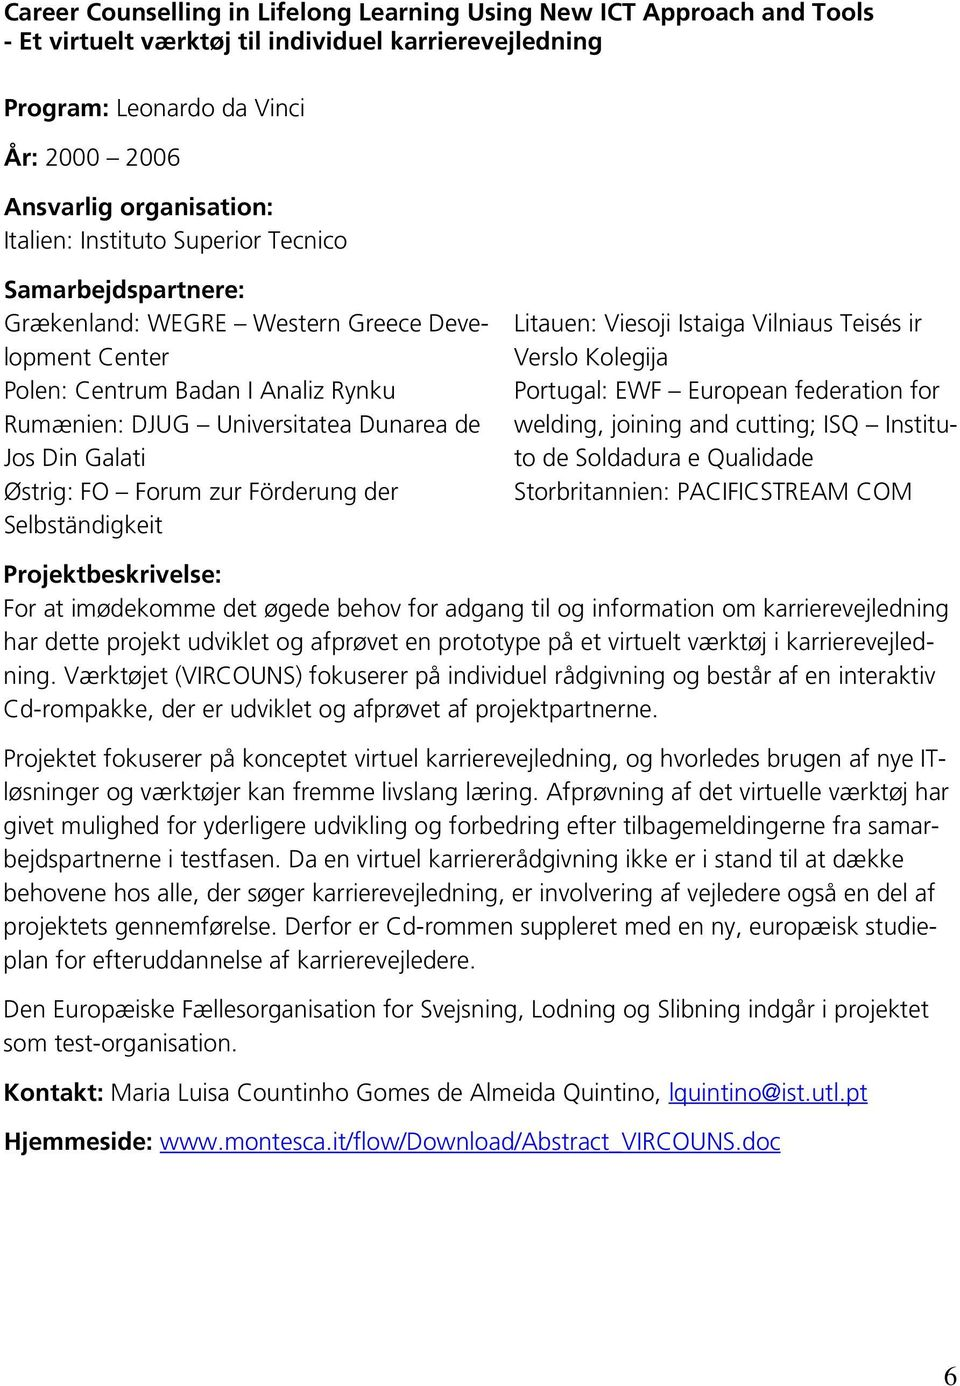 Istaiga Vilniaus Teisés ir Verslo Kolegija Portugal: EWF European federation for welding, joining and cutting; ISQ Instituto de Soldadura e Qualidade Storbritannien: PACIFICSTREAM COM For at